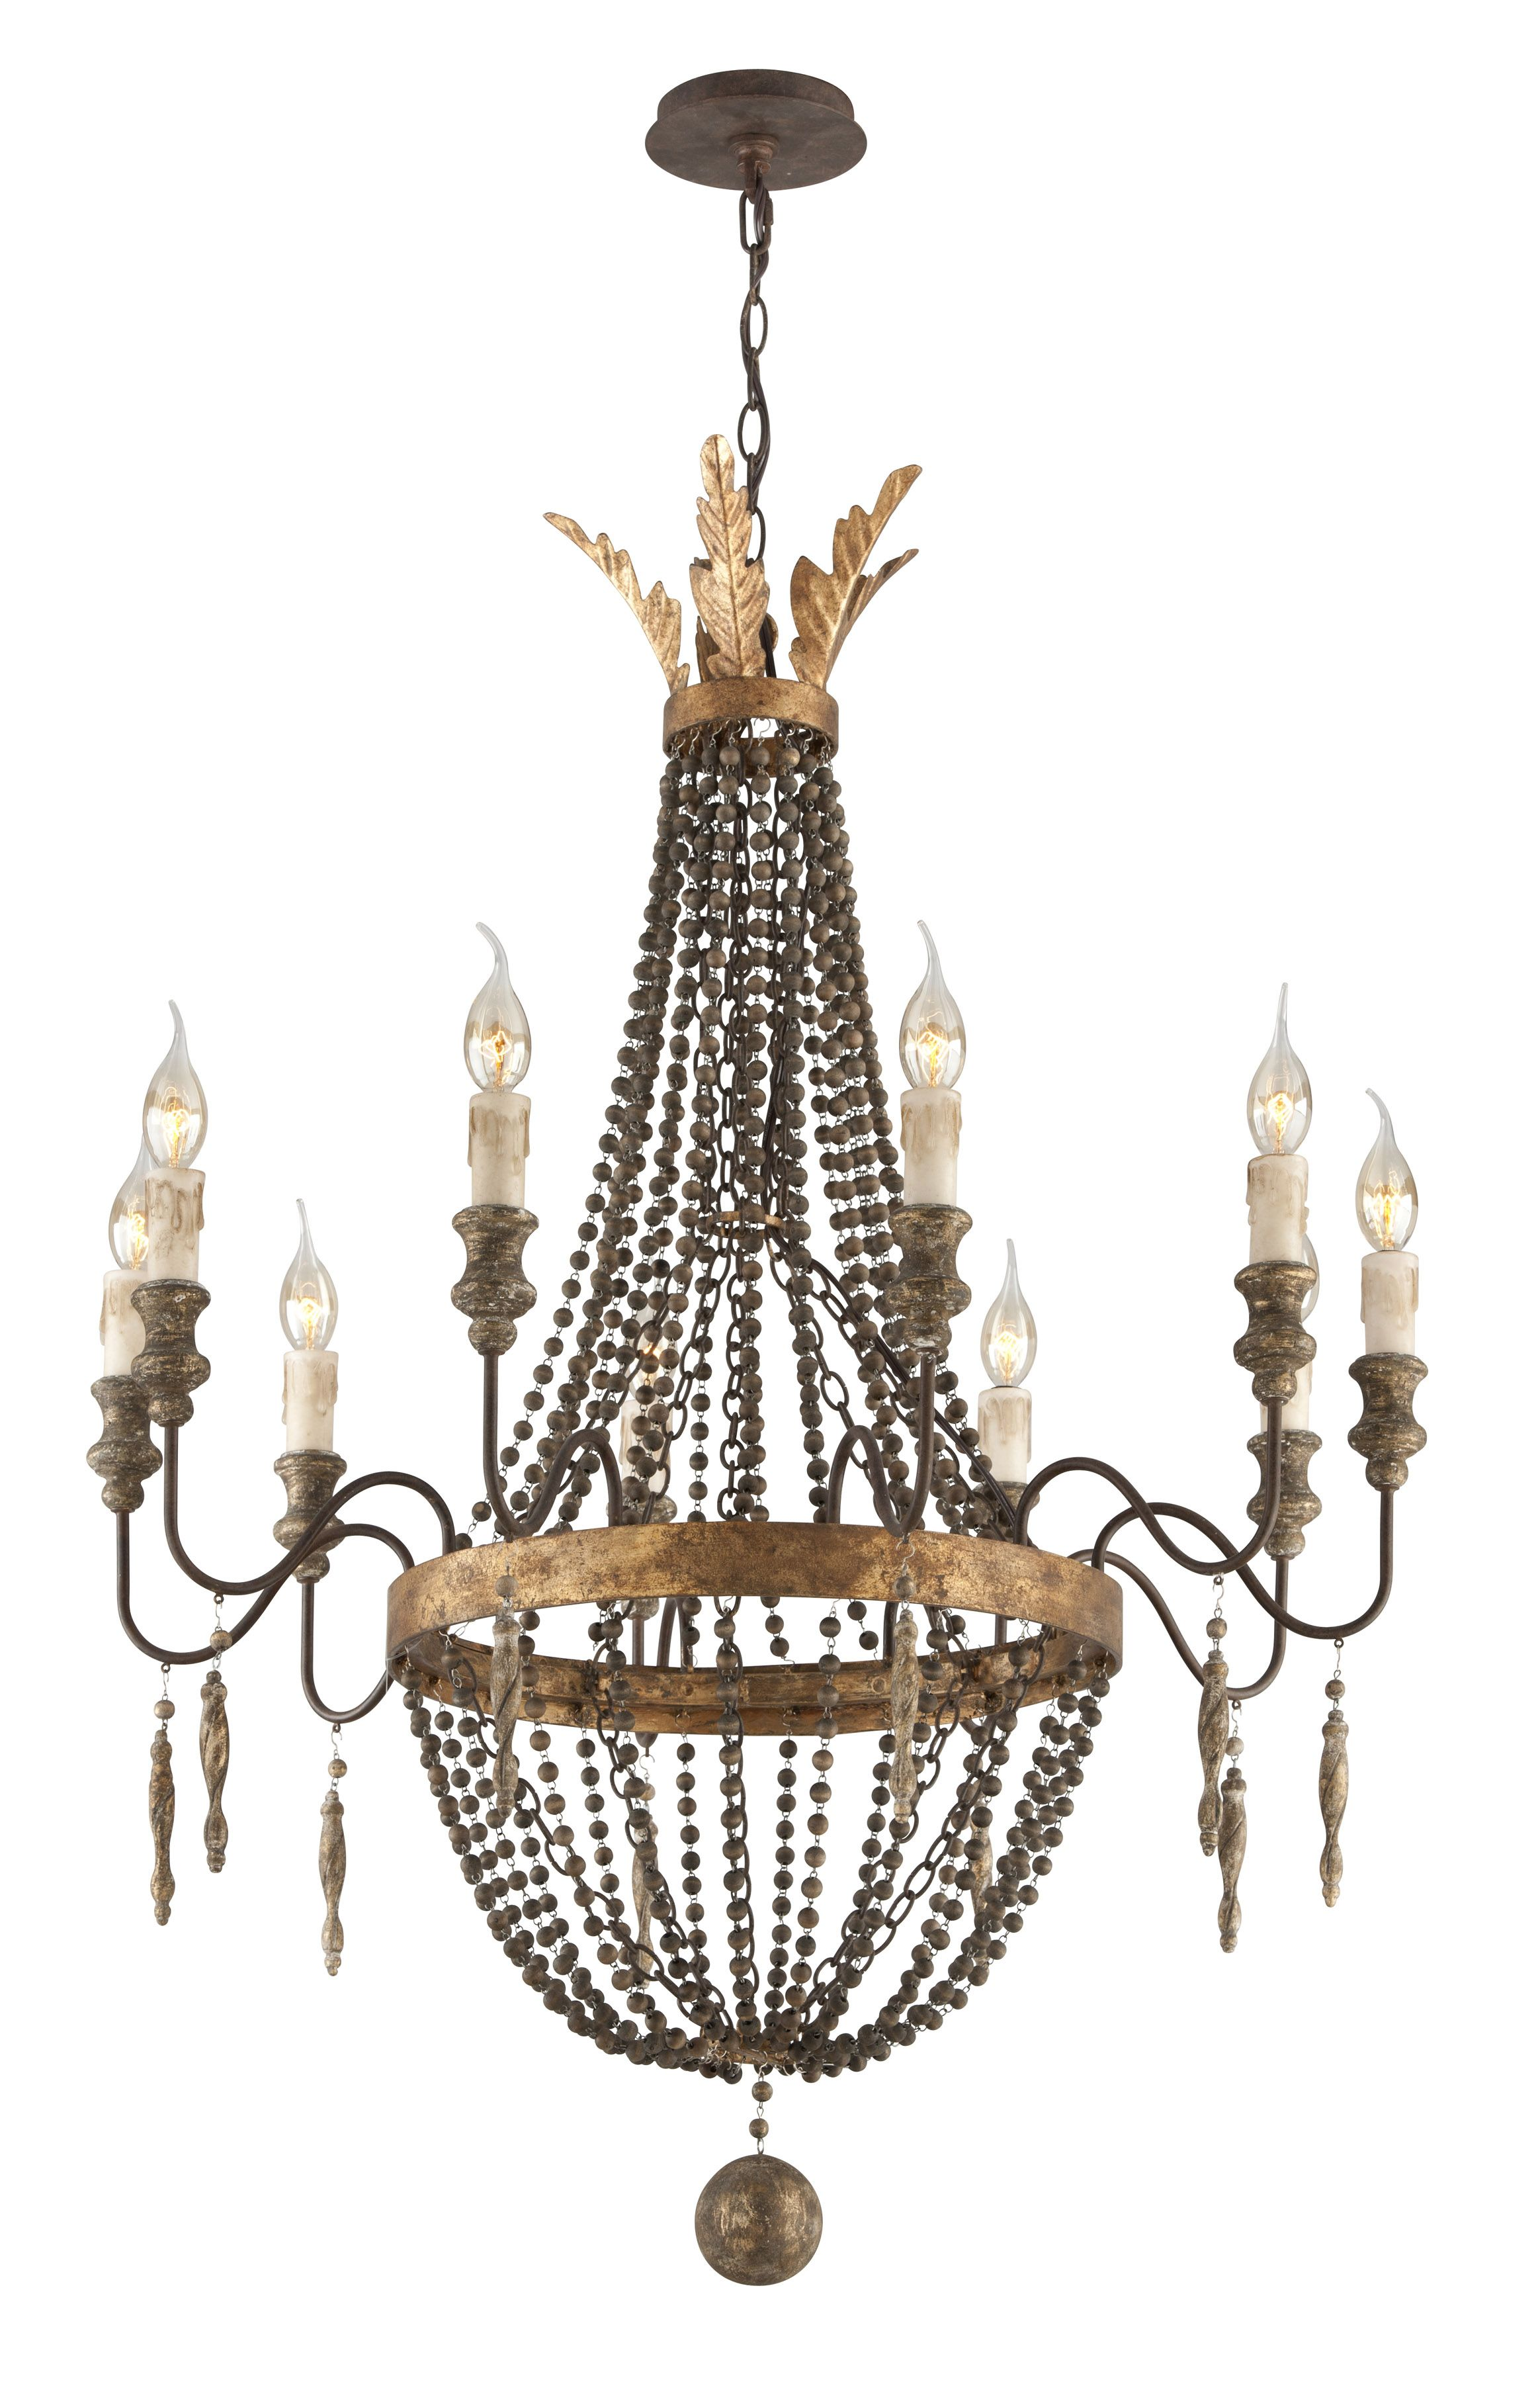 Delacroix By Troy Lighting For A New Chandelier In The Dining Room